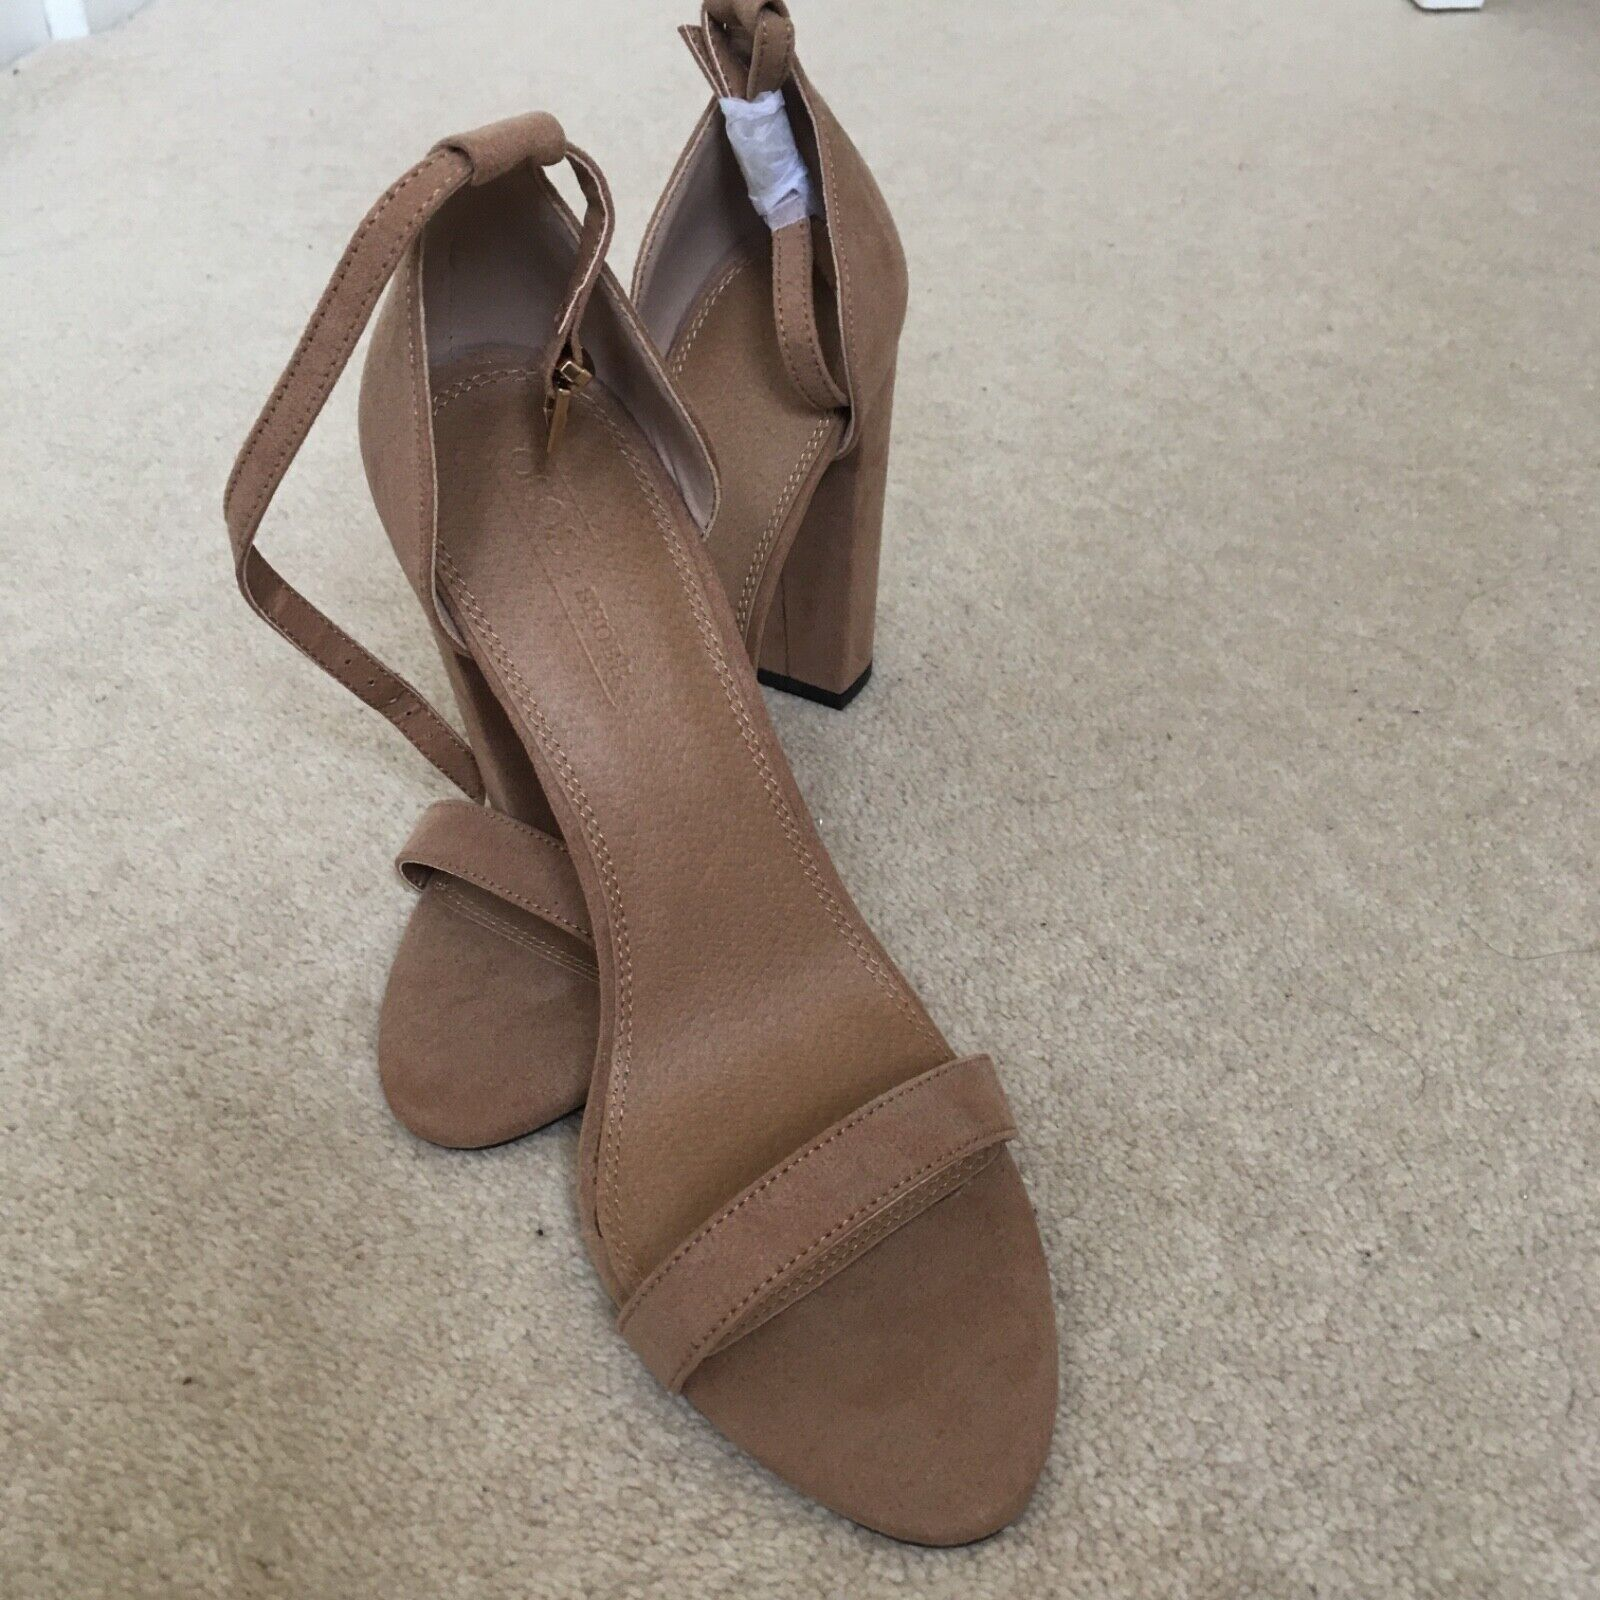 ASOS Ladies Highball Barely There Heeled Sandals size UK 5.5 Faux Suede